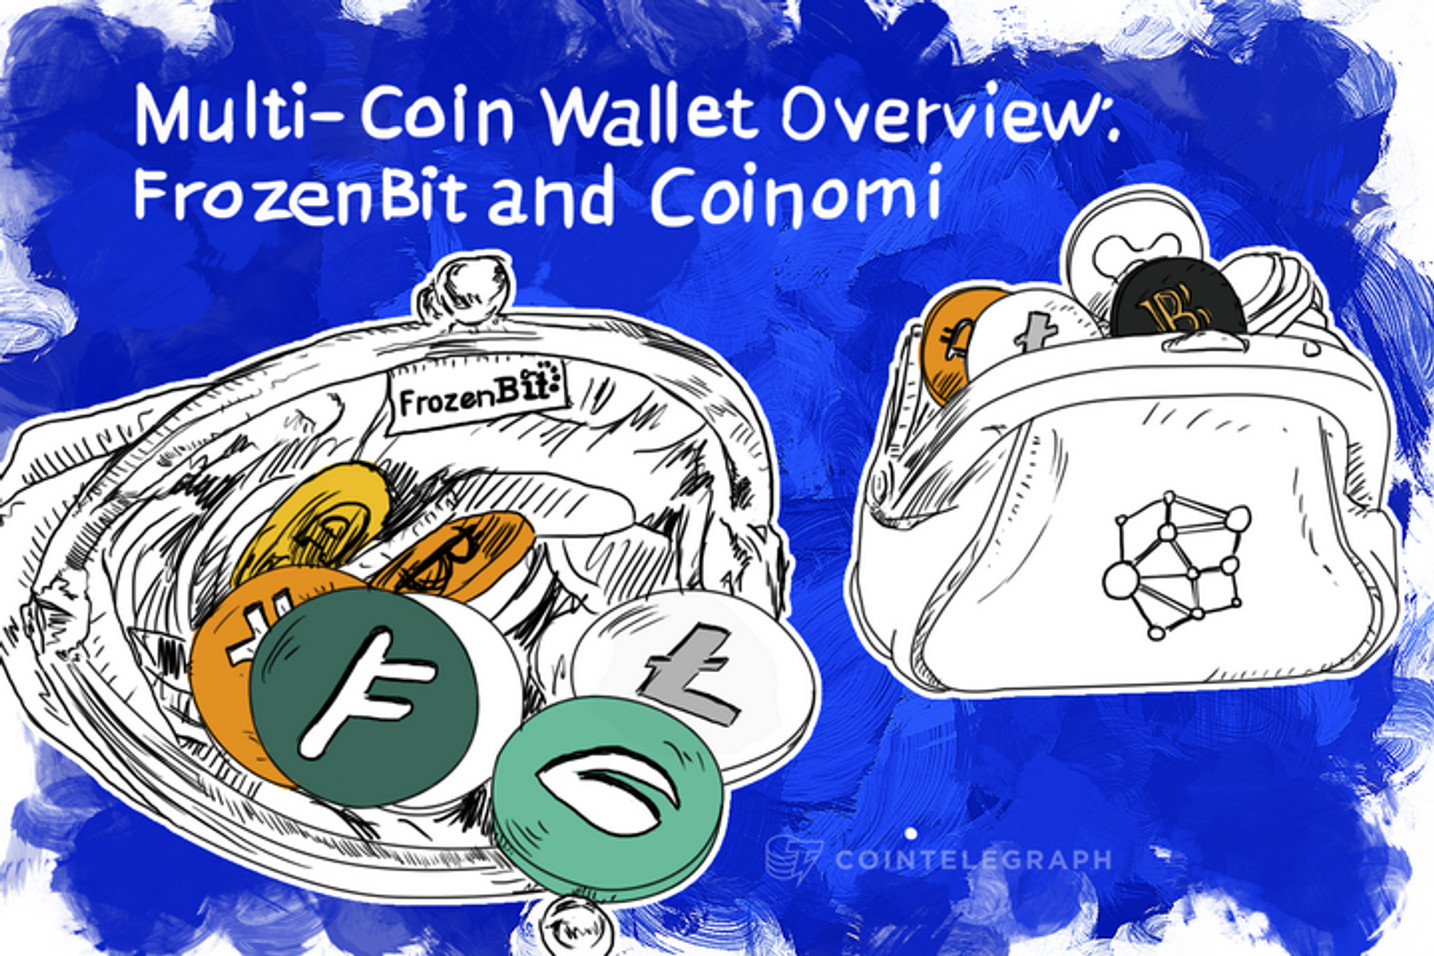 Multi-Coin Wallet Overview: FrozenBit and Coinomi